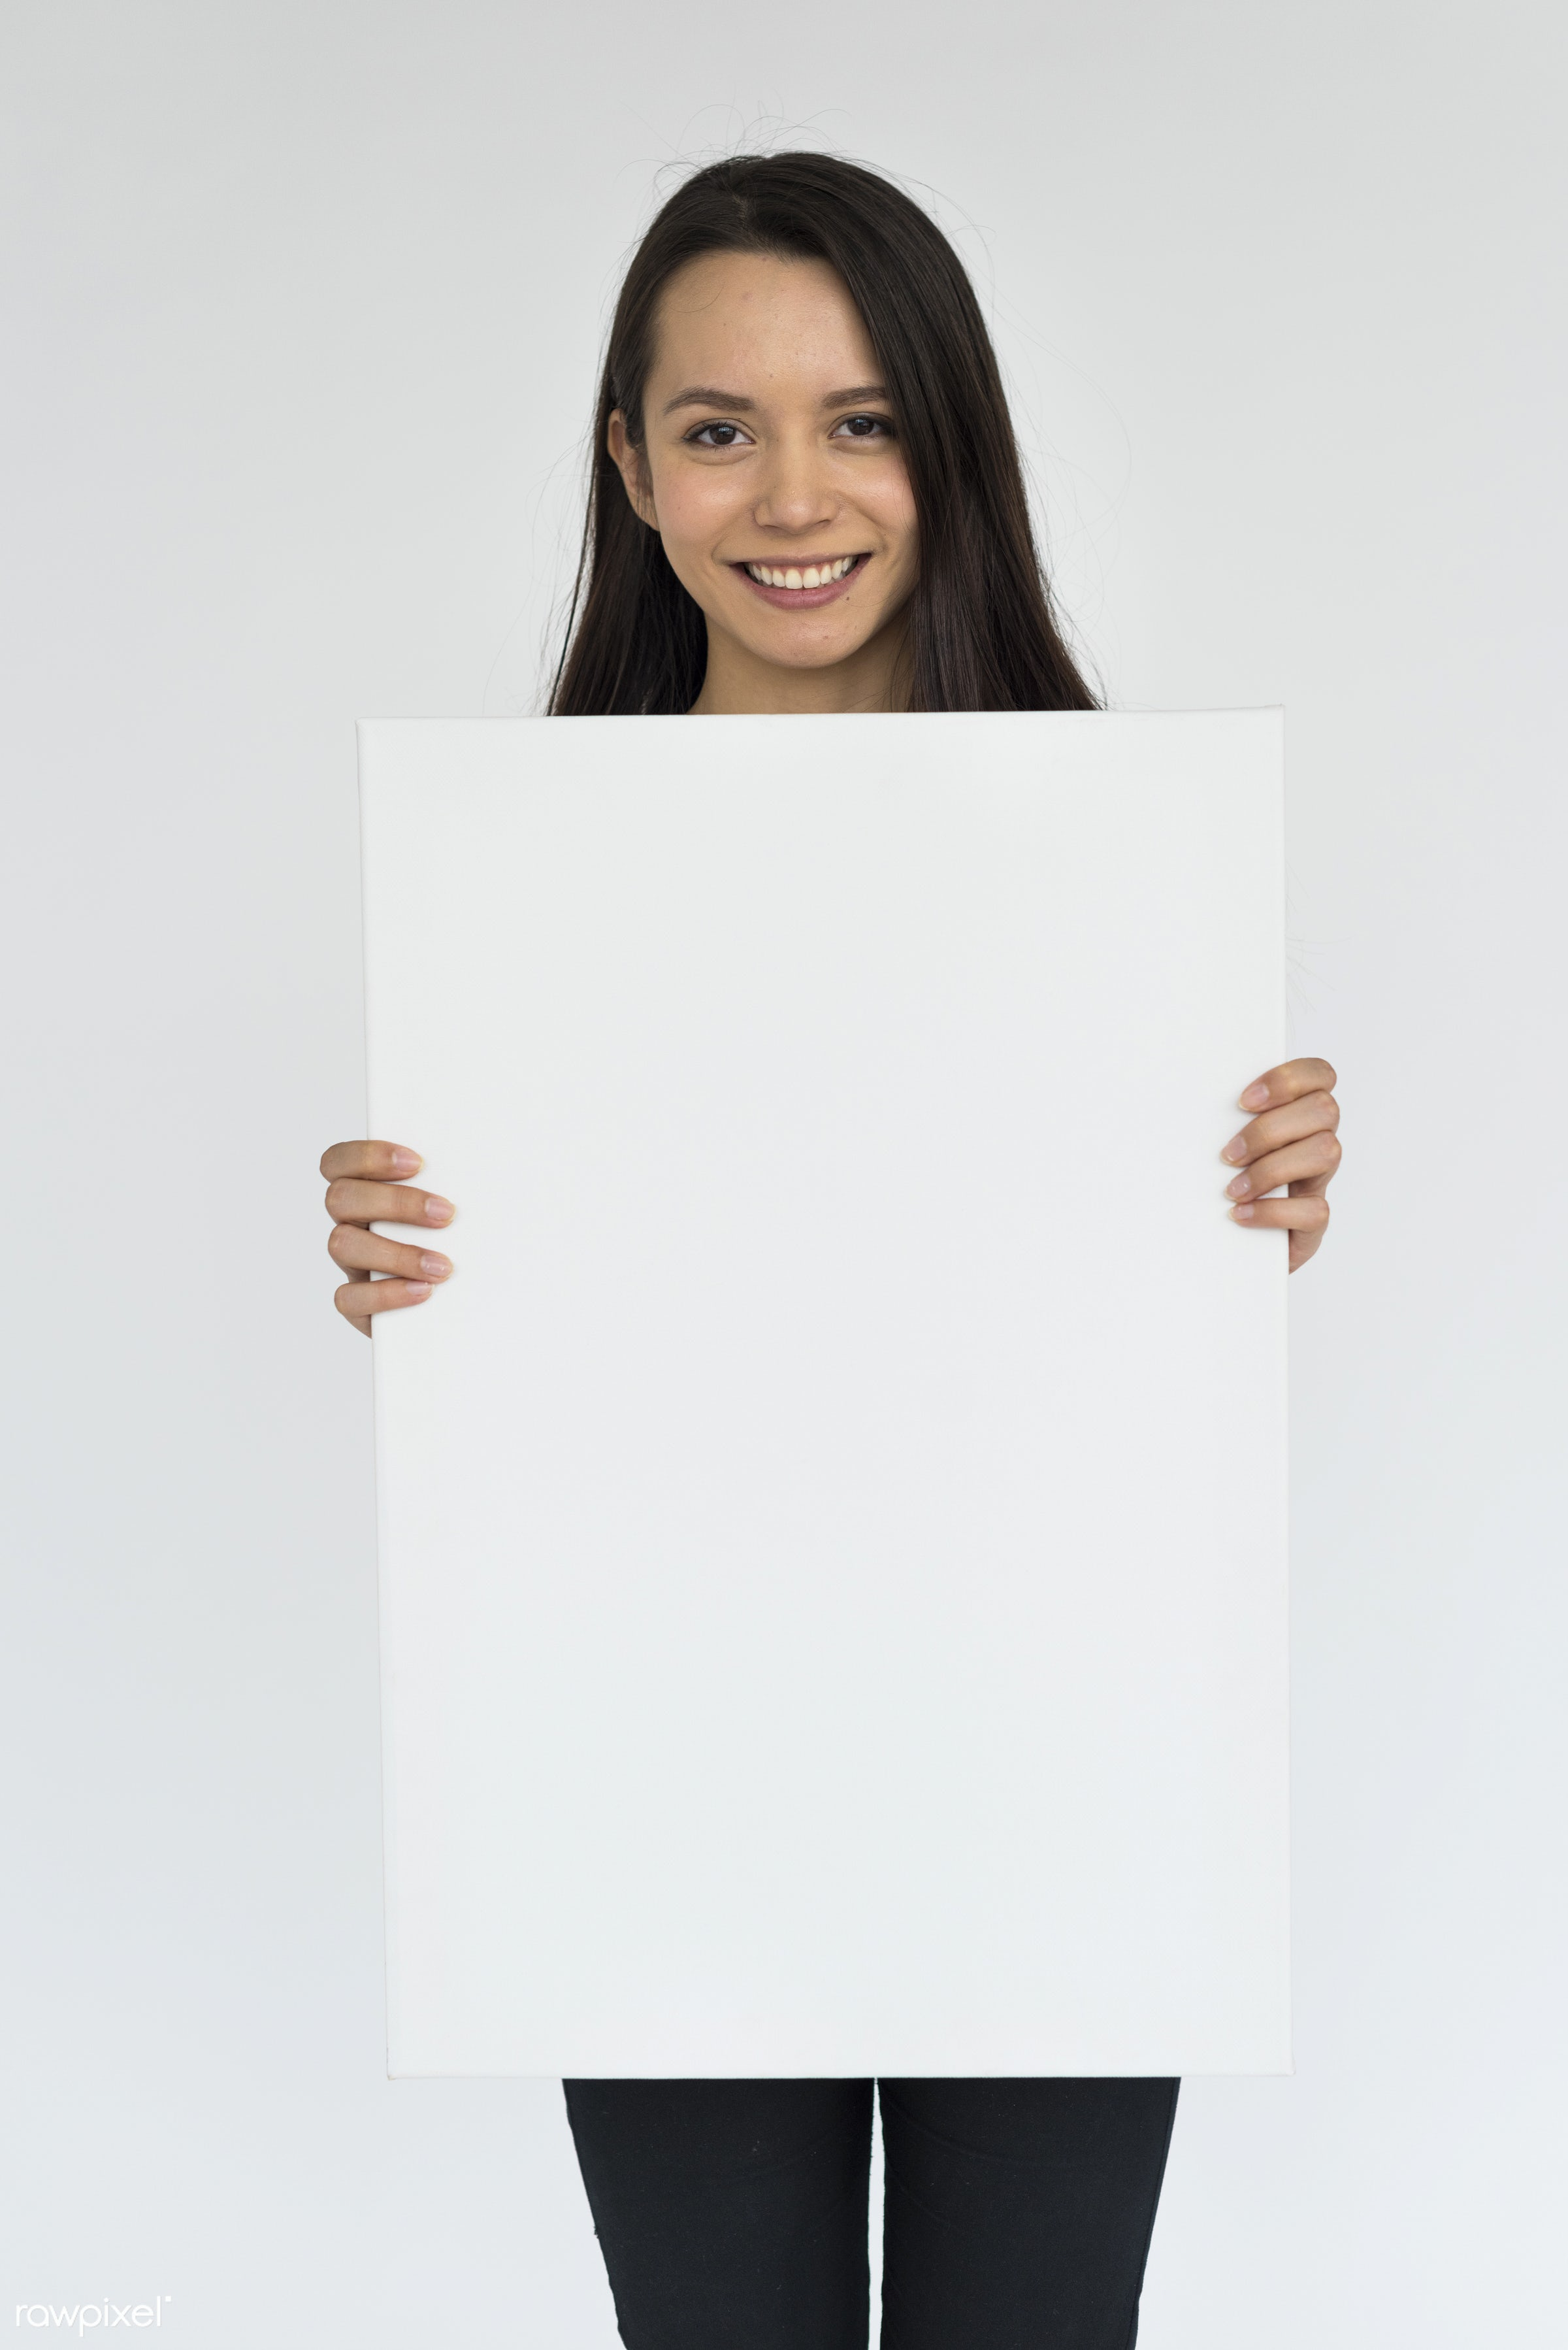 advertisement, advertising, background, banner, blank, board, candid, casual, caucasian, copy space, copyspace, emotion,...